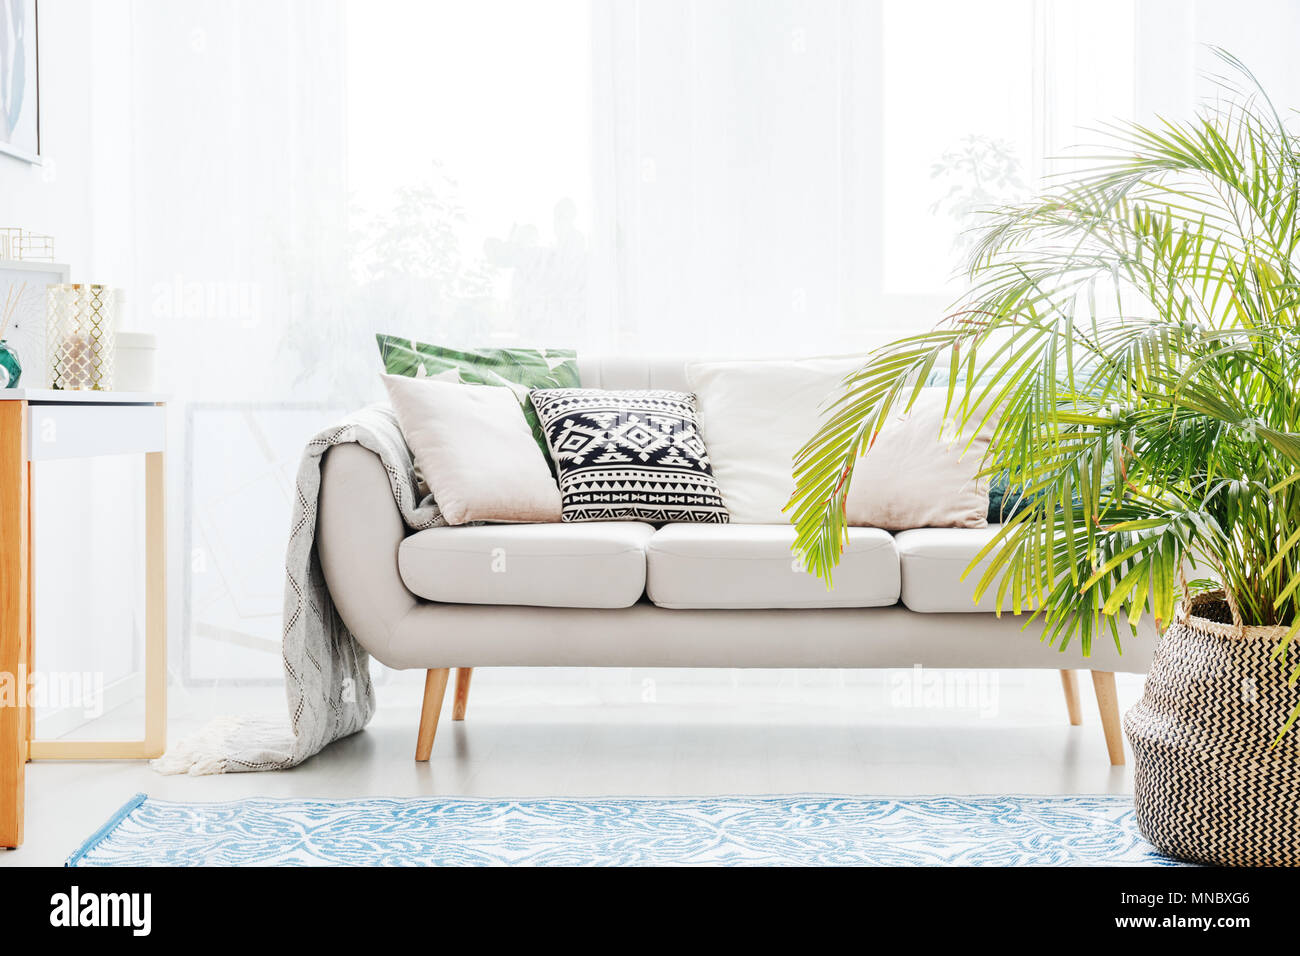 Plant Next To Beige Sofa With Bright Cushions In Living Room With Blue Carpet Stock Photo Alamy